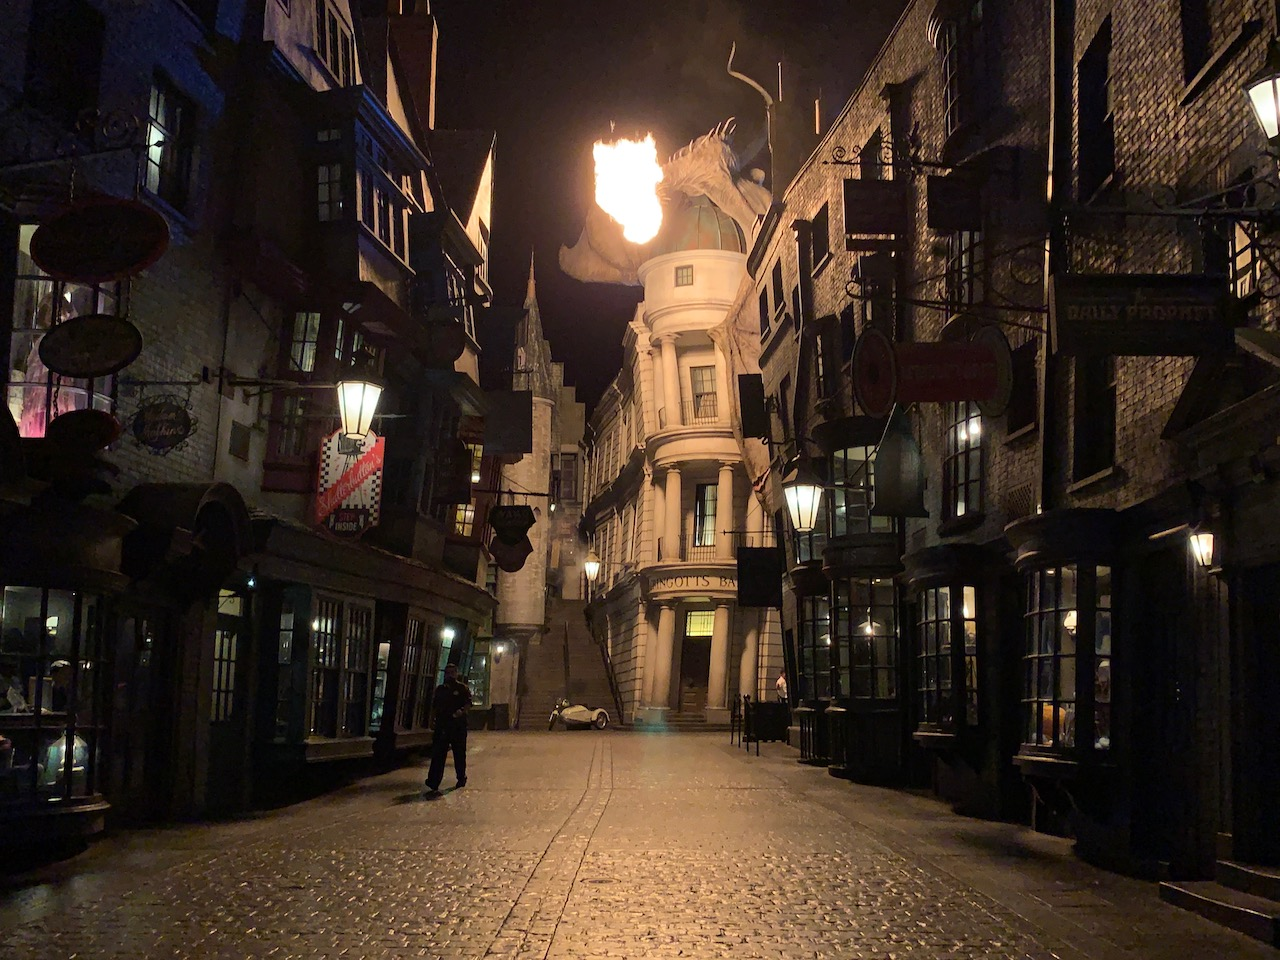 universal orlando summer 2019 trip report part 7 diagon alley.jpeg